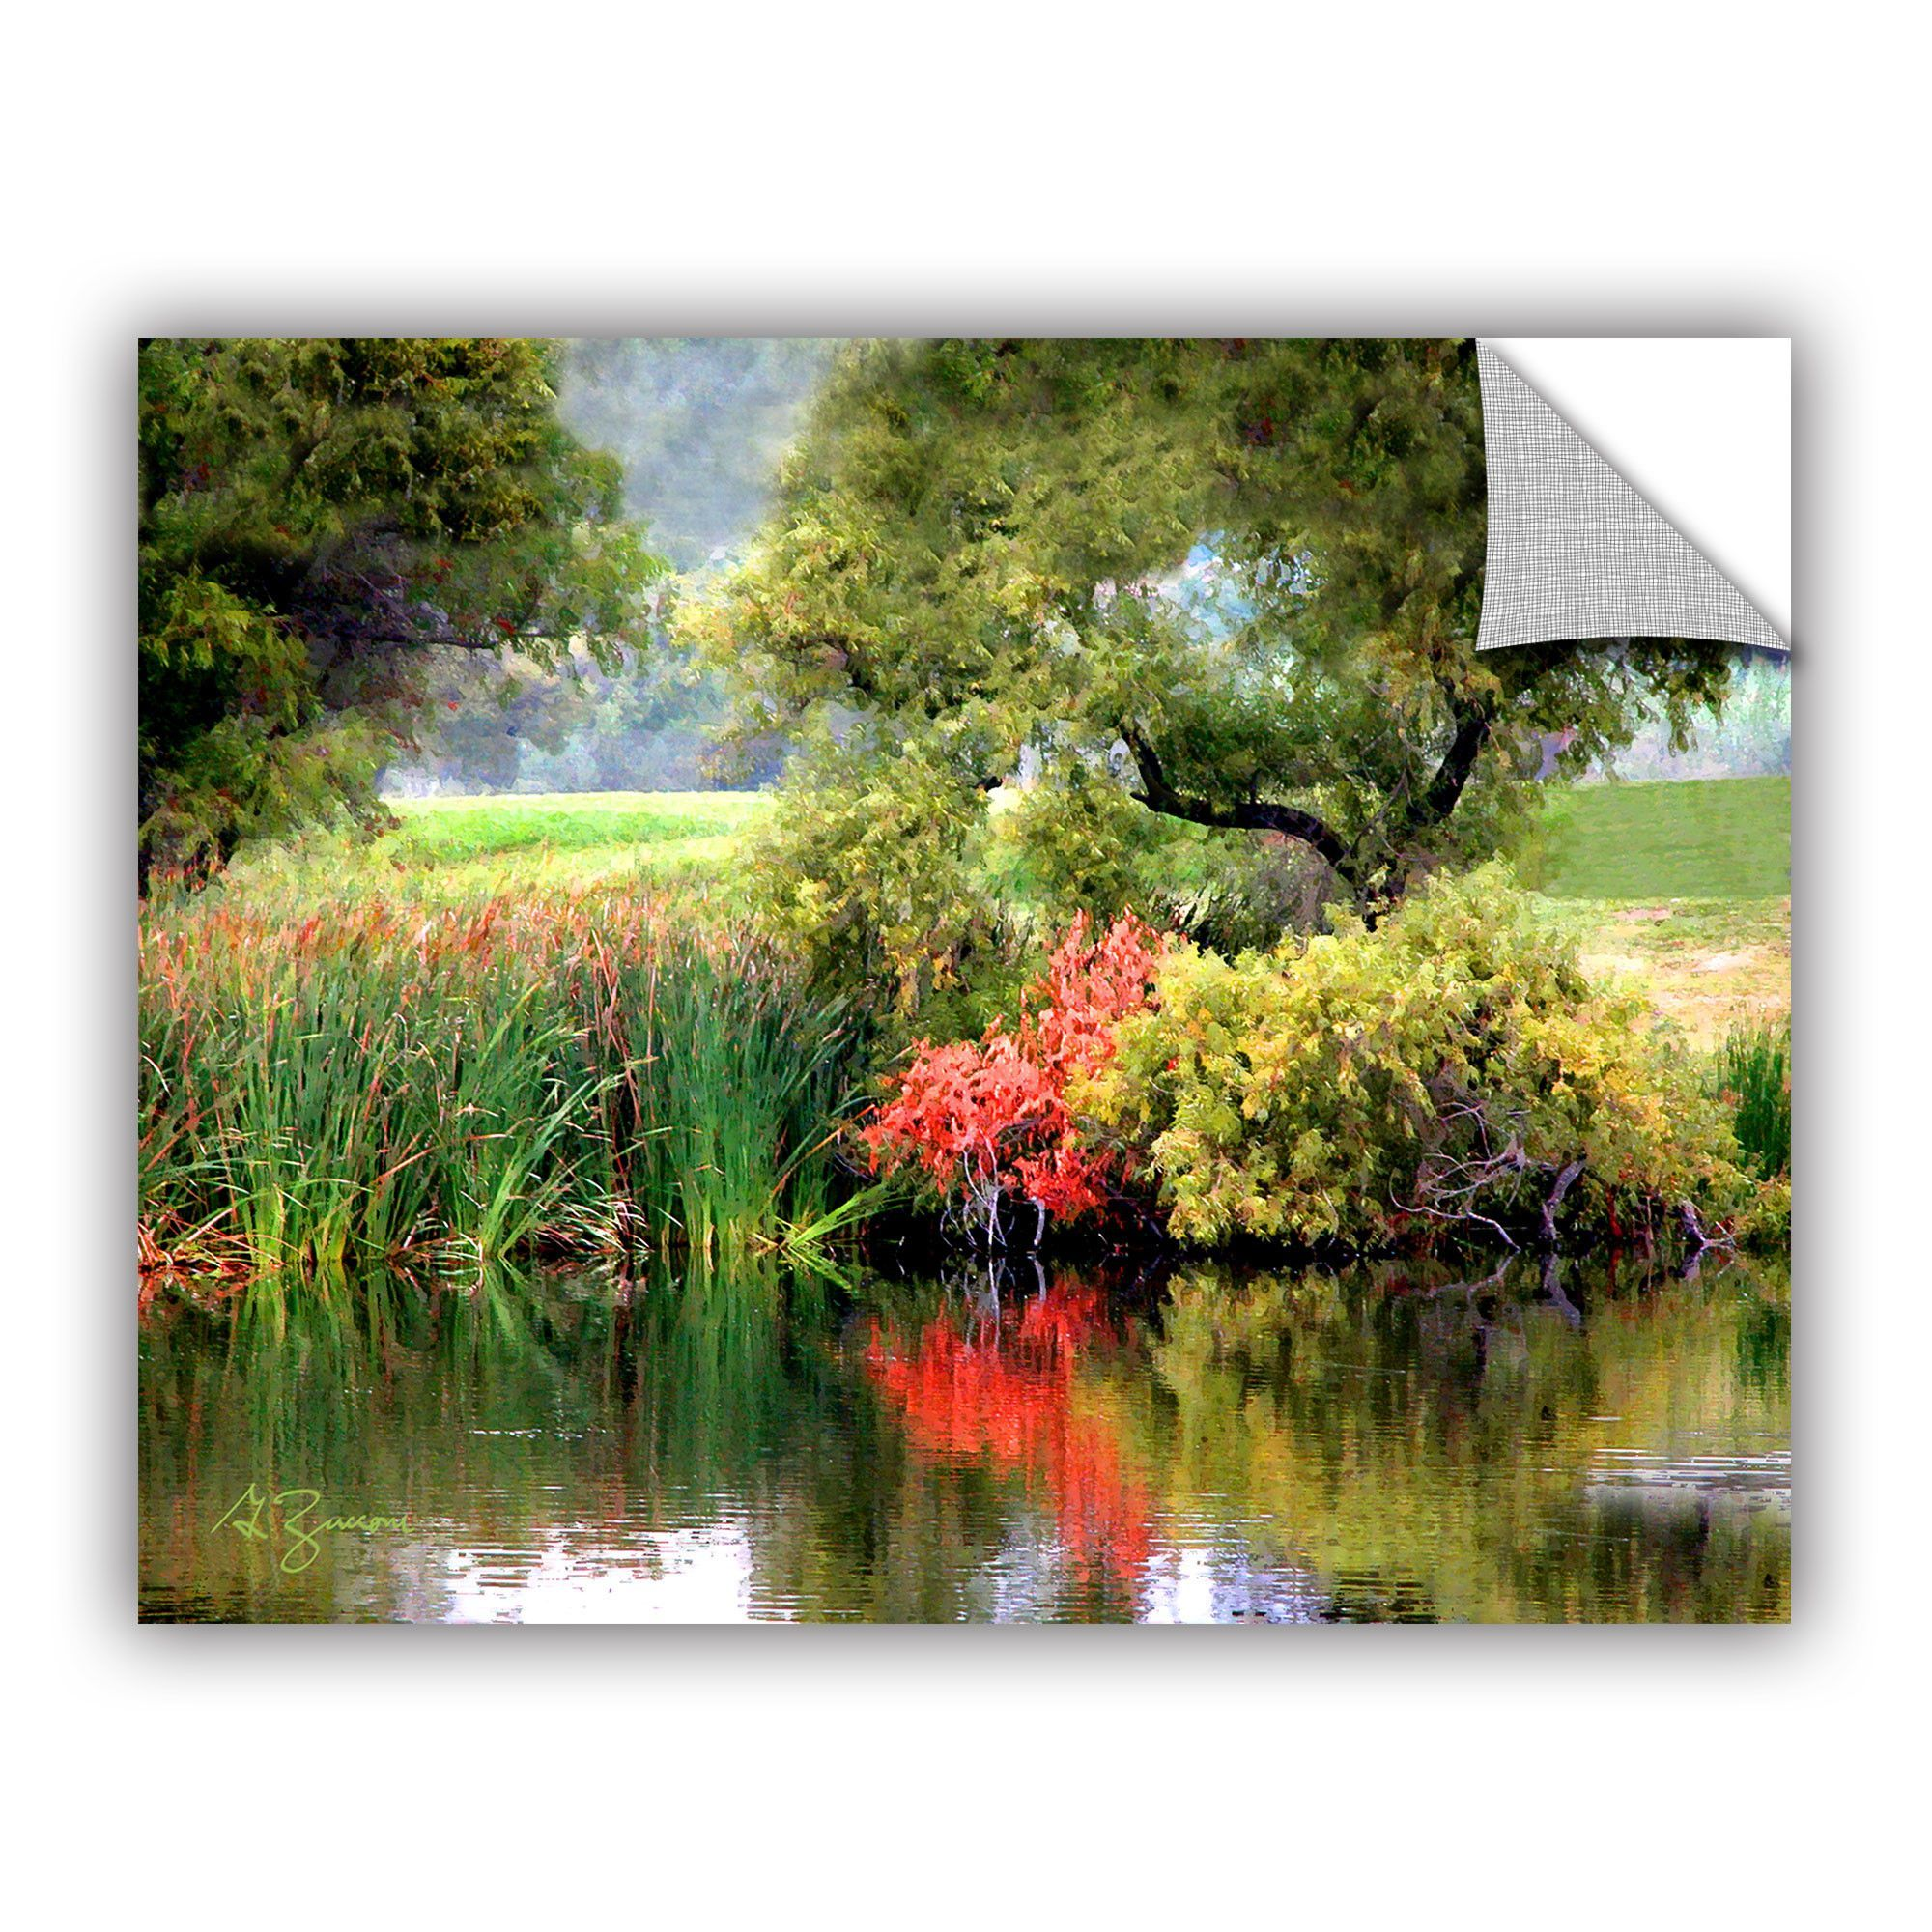 Santee Lakes By George Zucconiremovable Wall Decal Santee Lakes Painting Prints Artwall